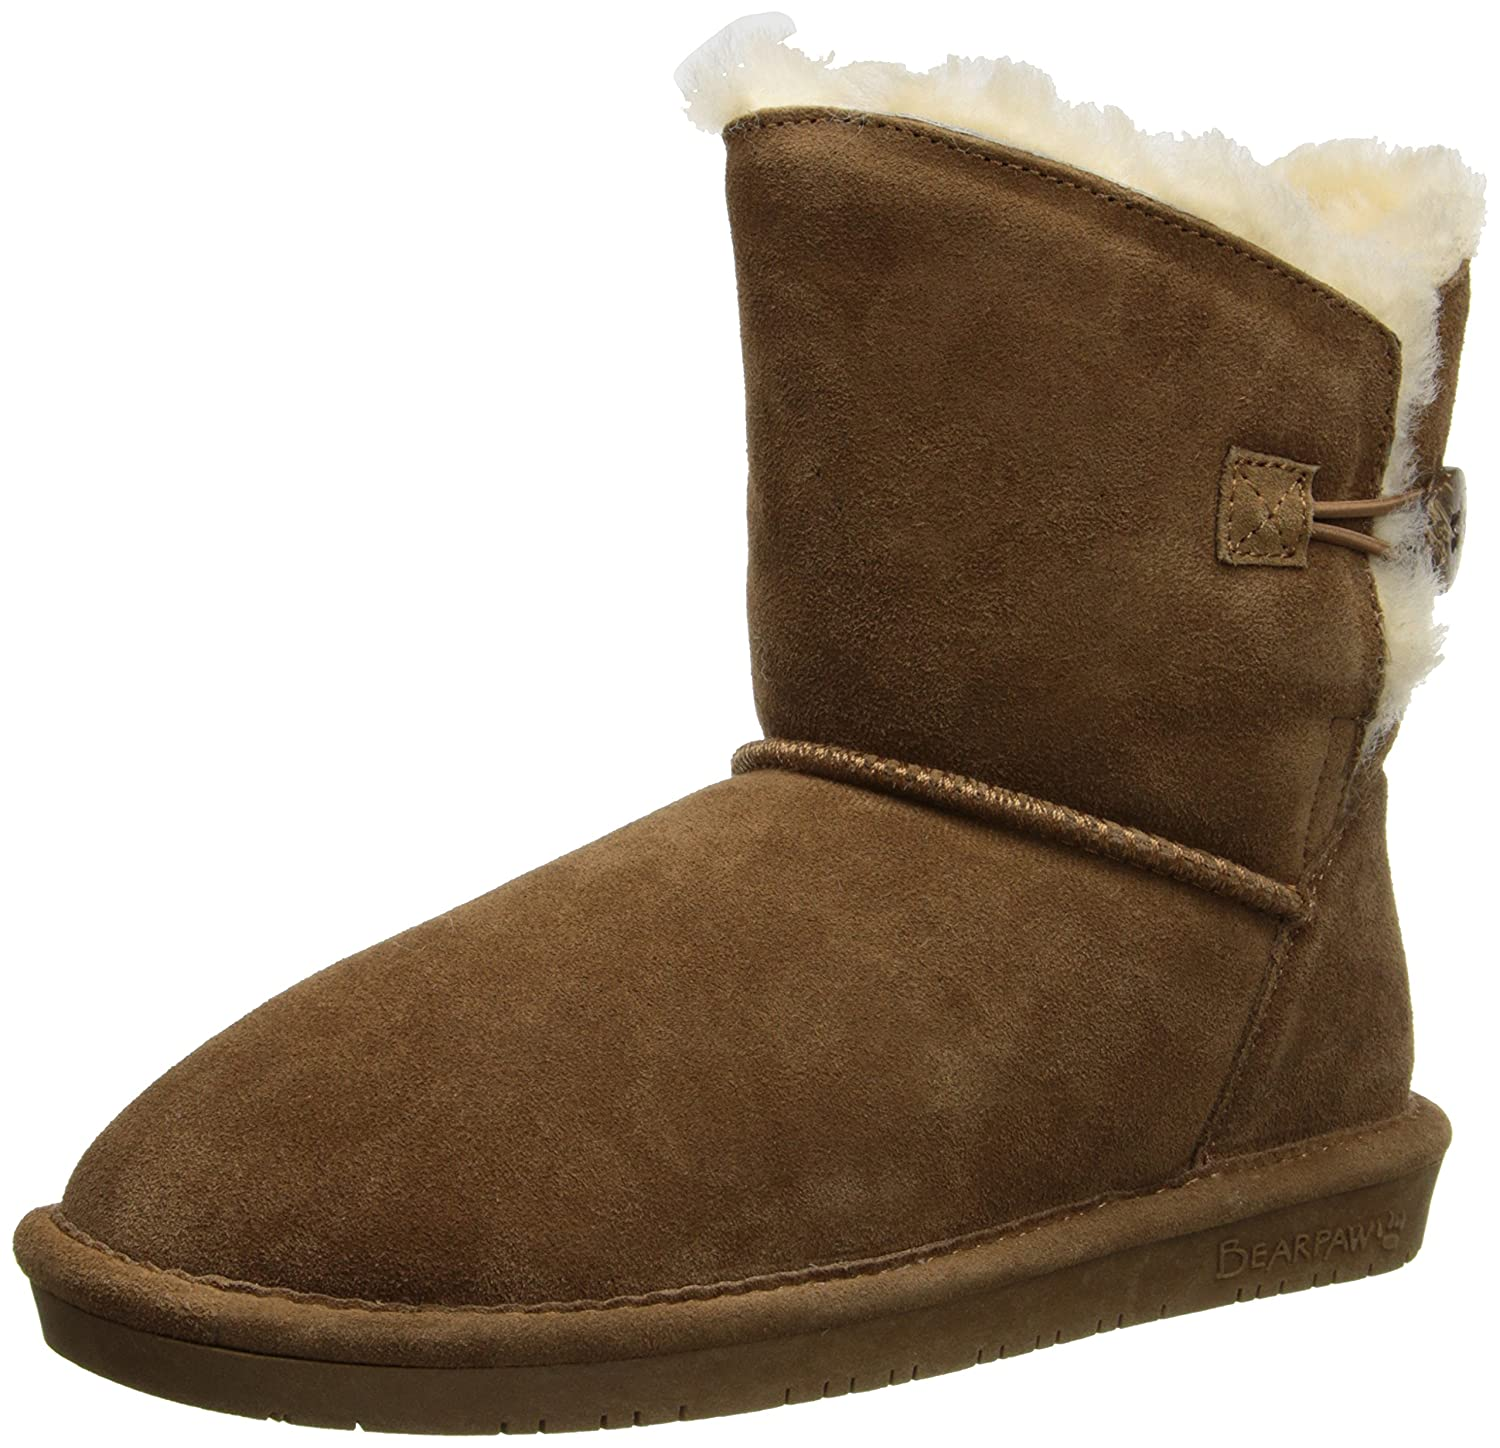 BEARPAW Women's Rosie Winter Boot B00IXANQY6 10 B(M) US|Hickory